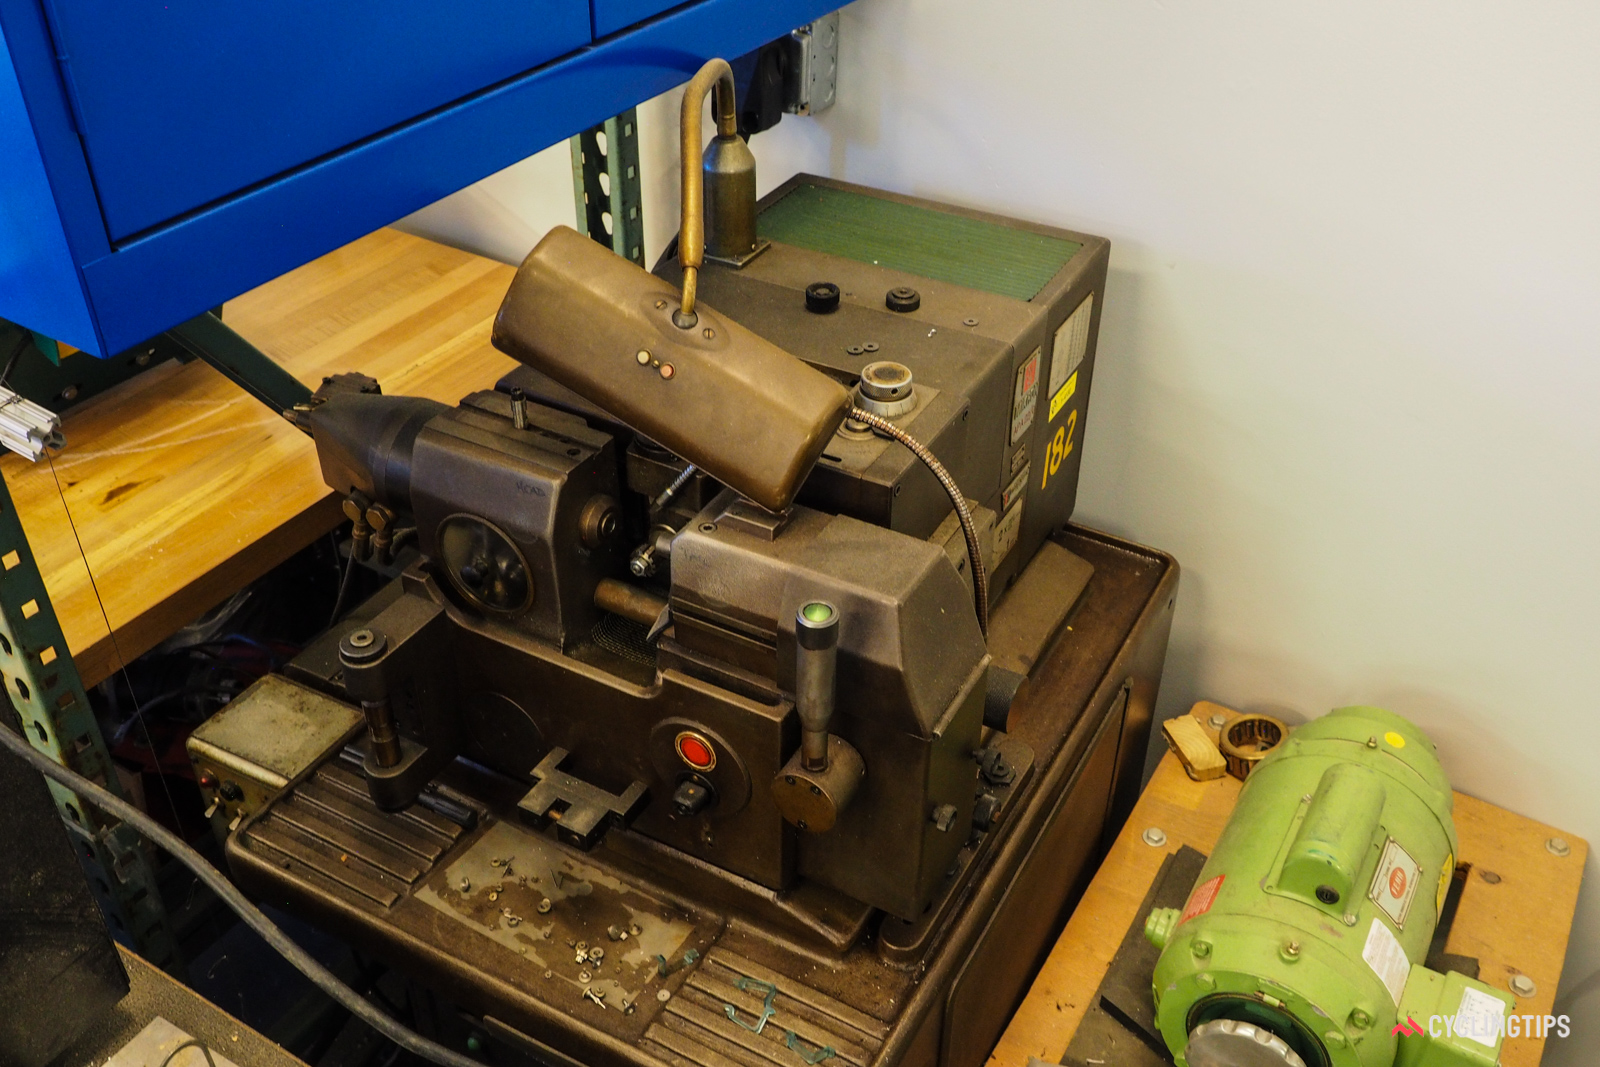 This decades-old machine is purpose-built for making small gears.